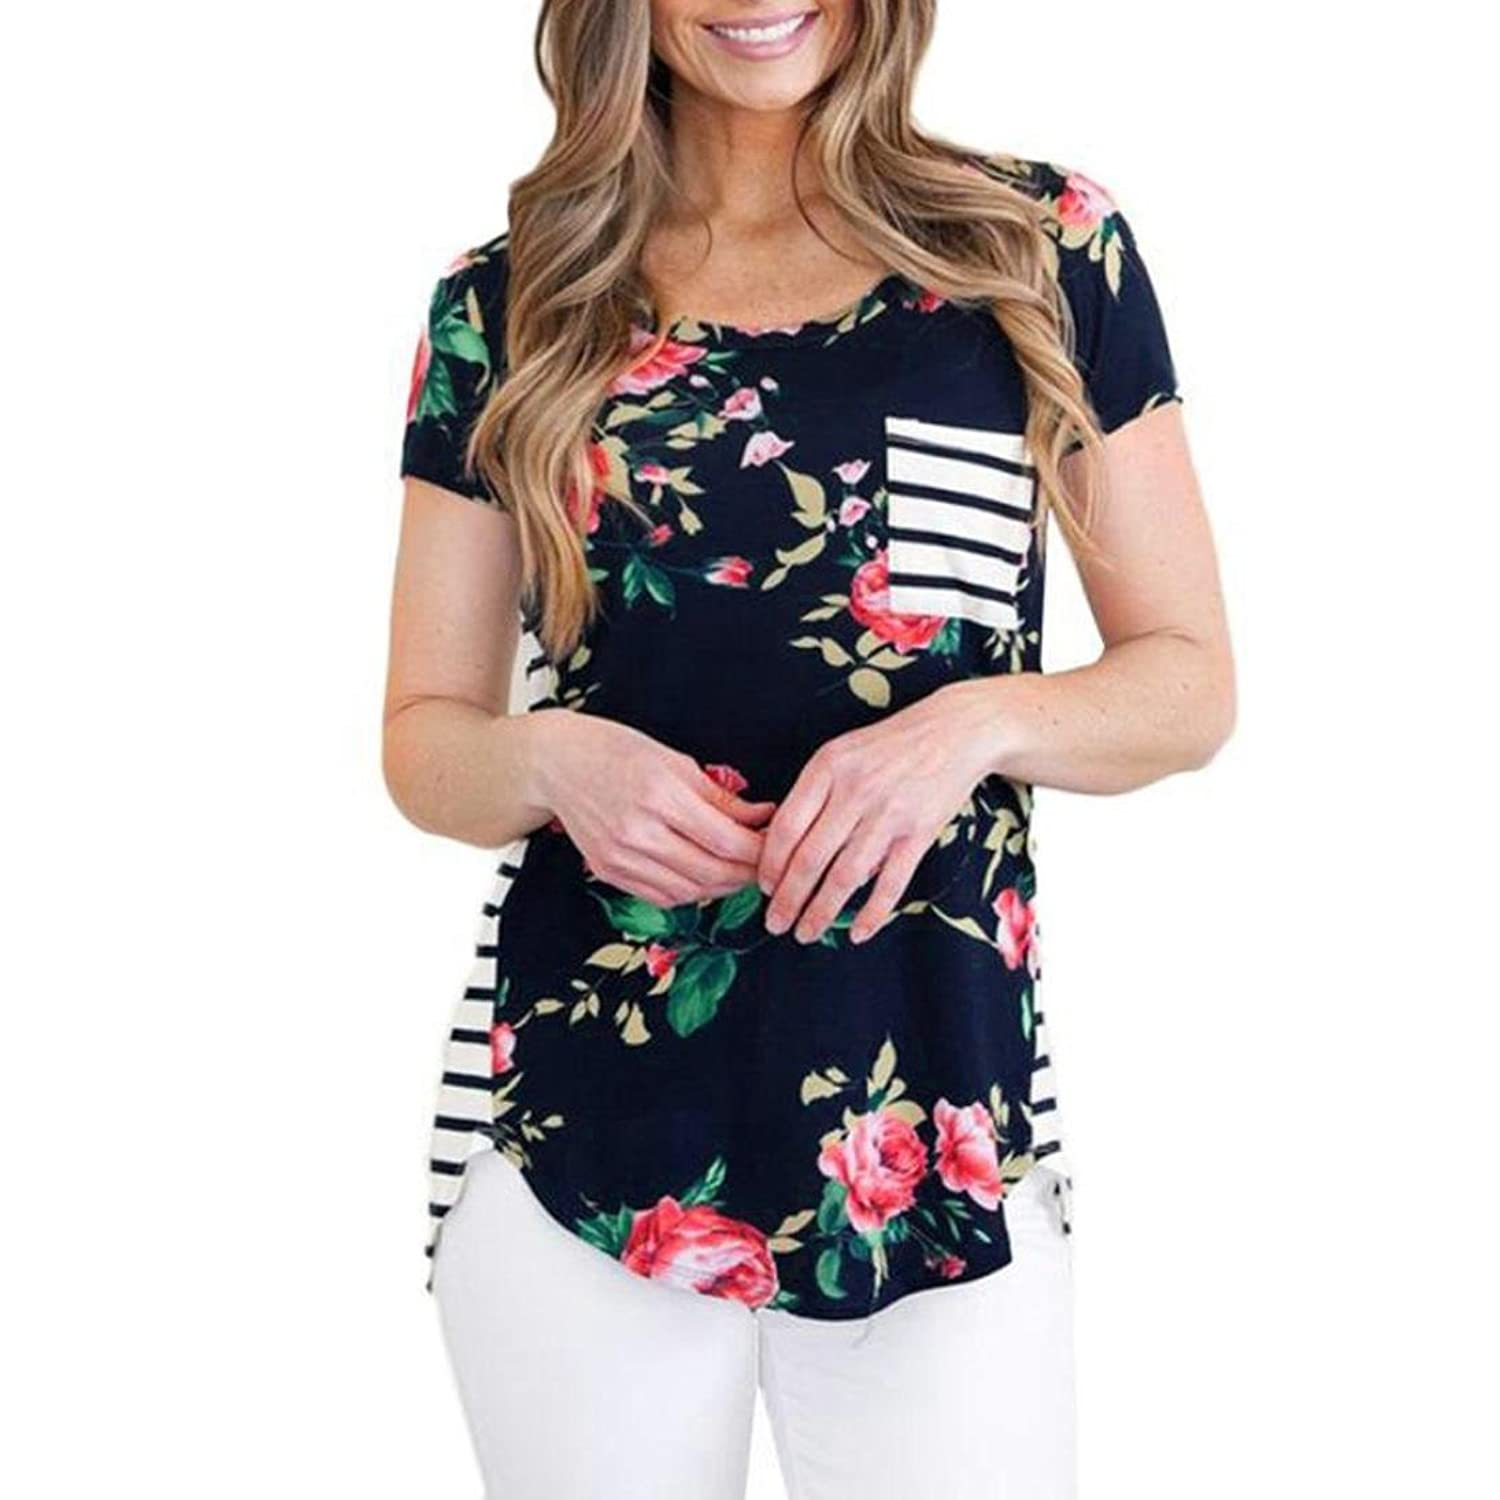 f8b25c0a62f11f Women's Casual Blouses T Shirt,Floral Print Back Striped Tee Crew Neck Shirt  Short Sleeve Tops with Pocket (XL, Black): Amazon.co.uk: Clothing